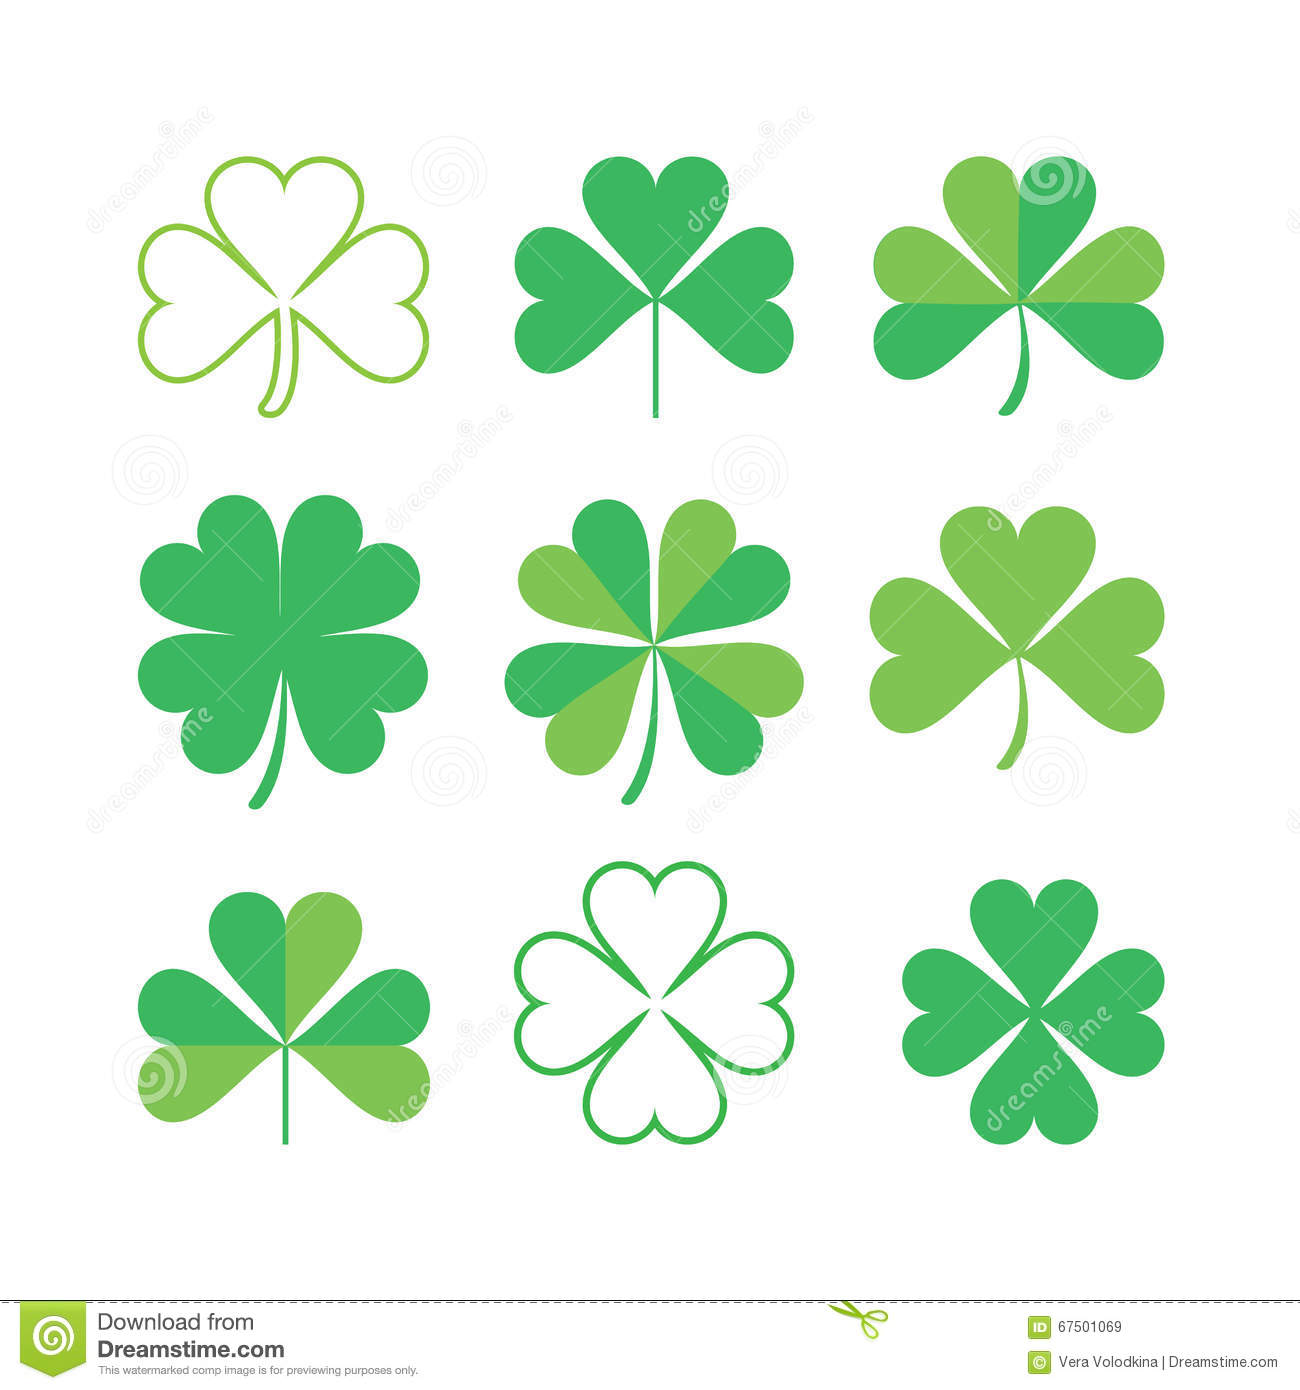 Set of shamrock